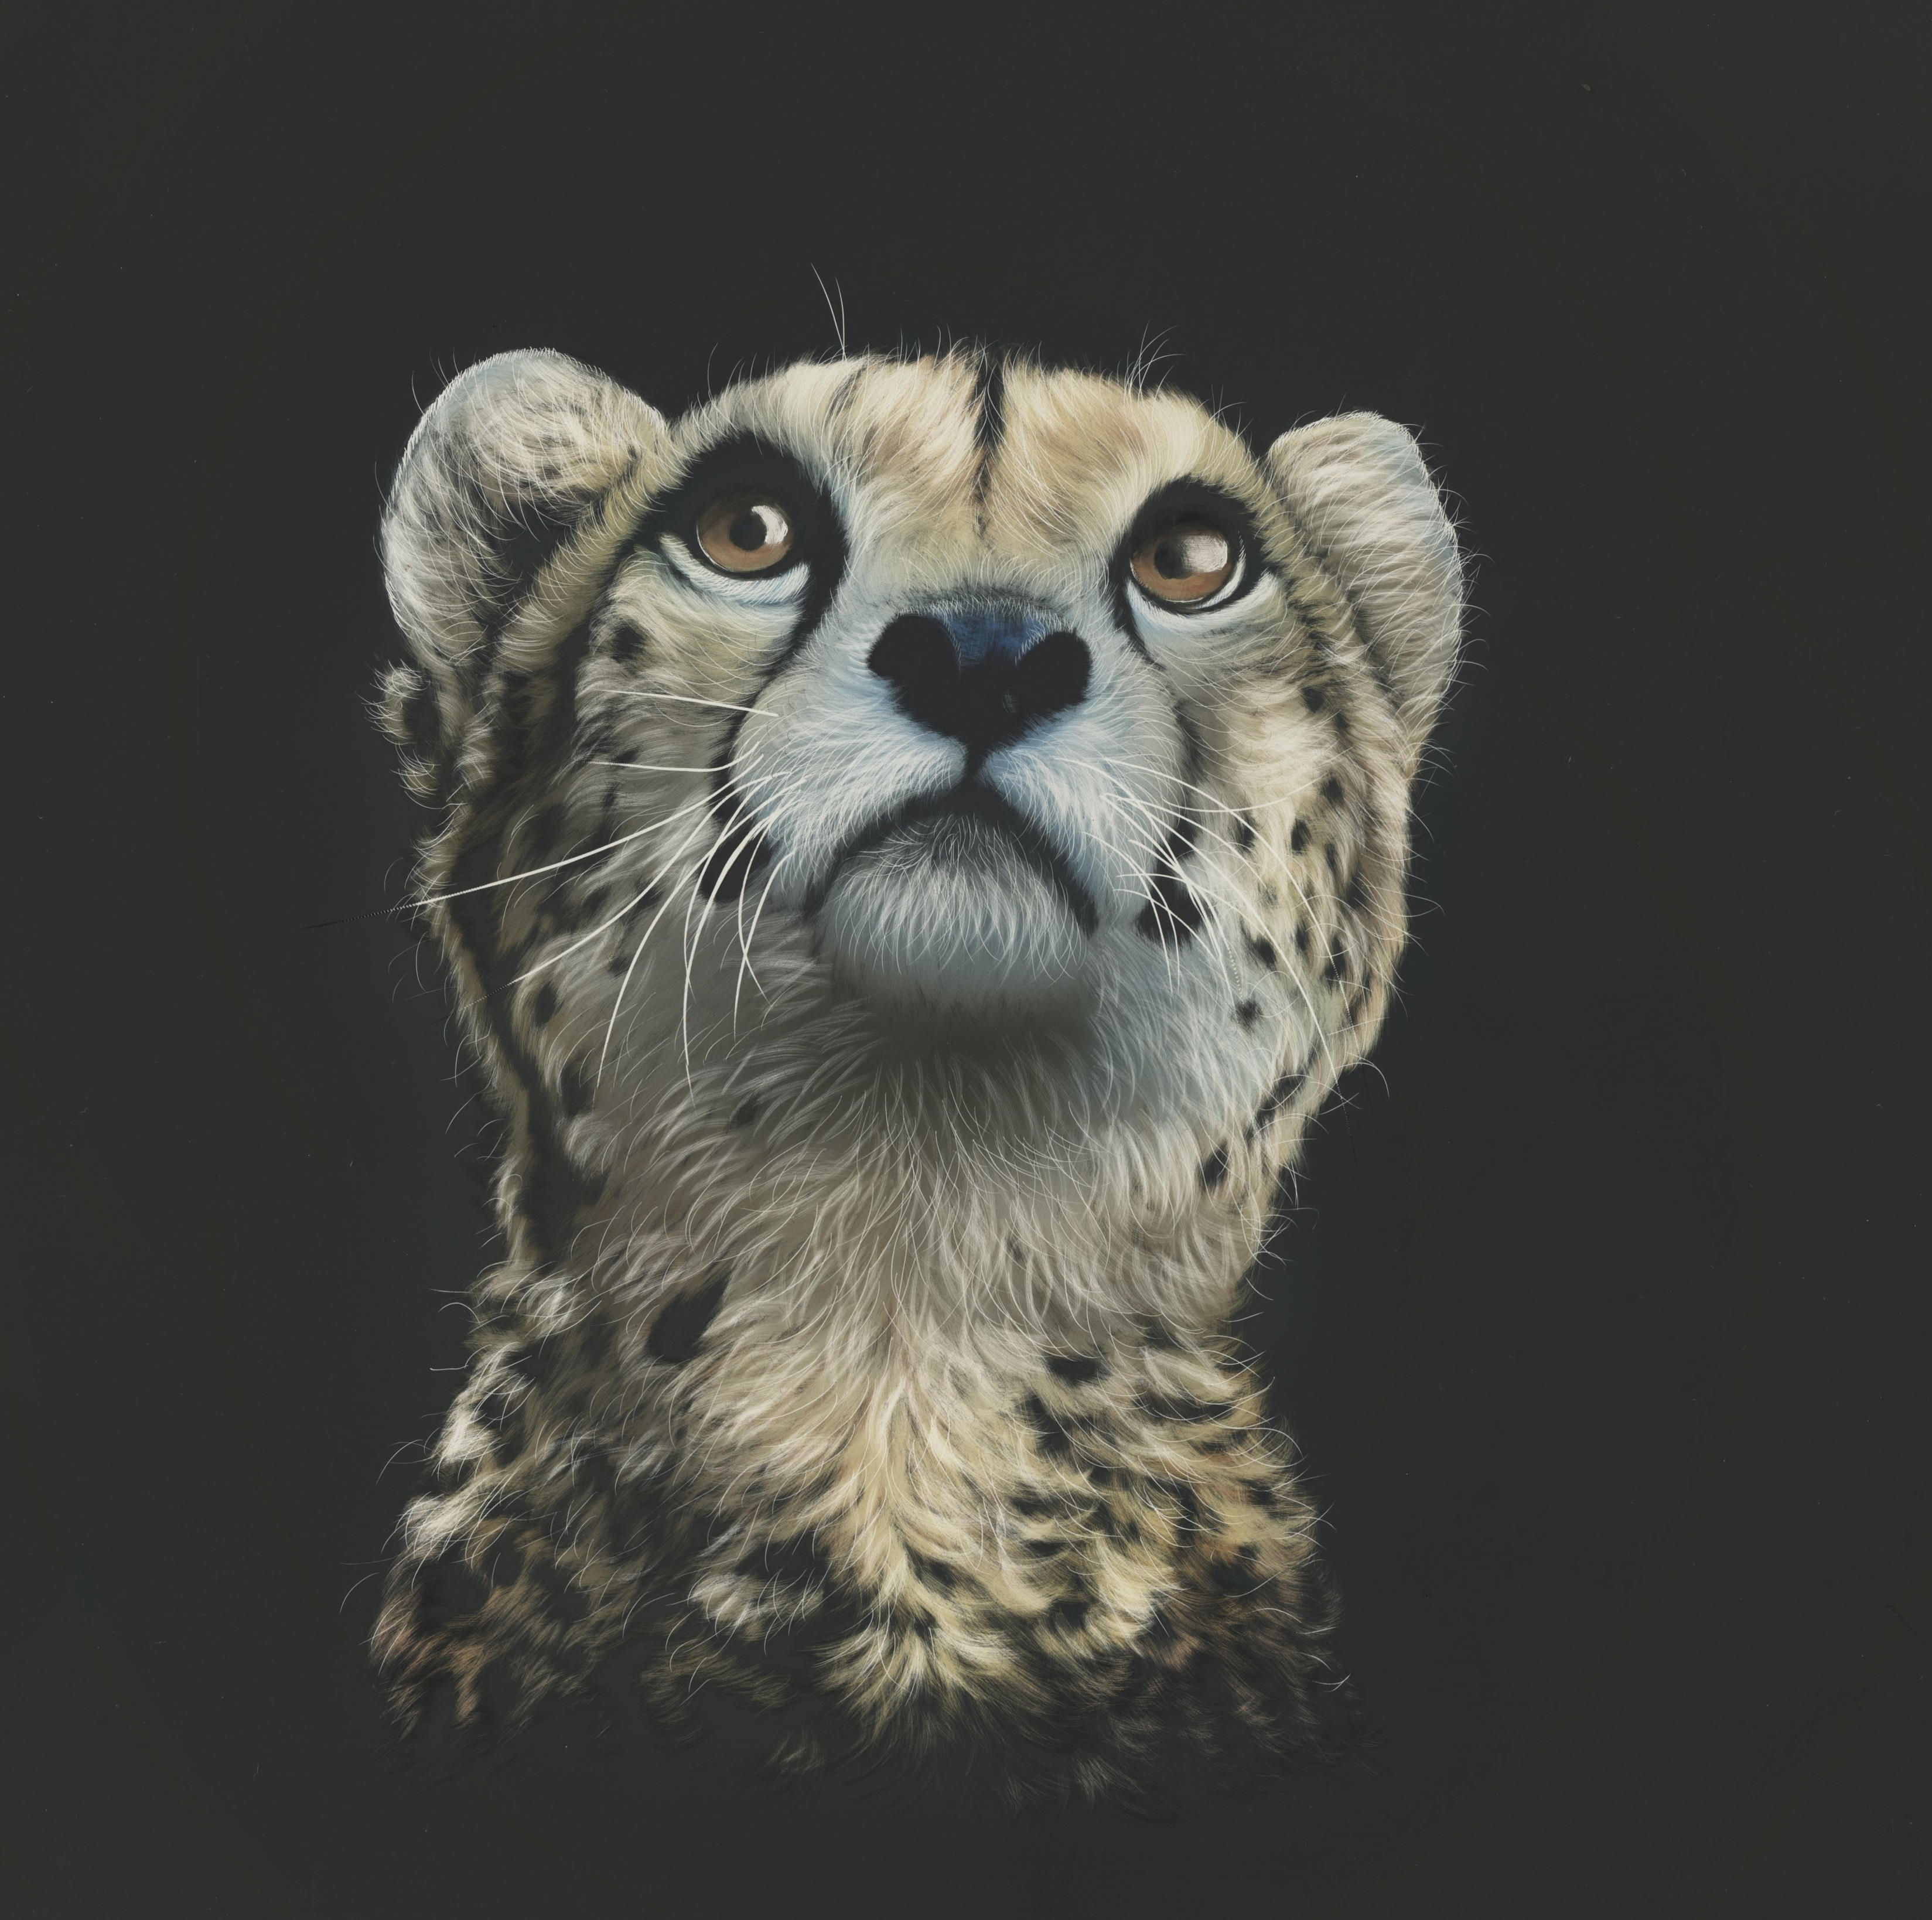 120752 download wallpaper Cheetah, Art, Picture, Drawing, Predator, Sight, Opinion screensavers and pictures for free